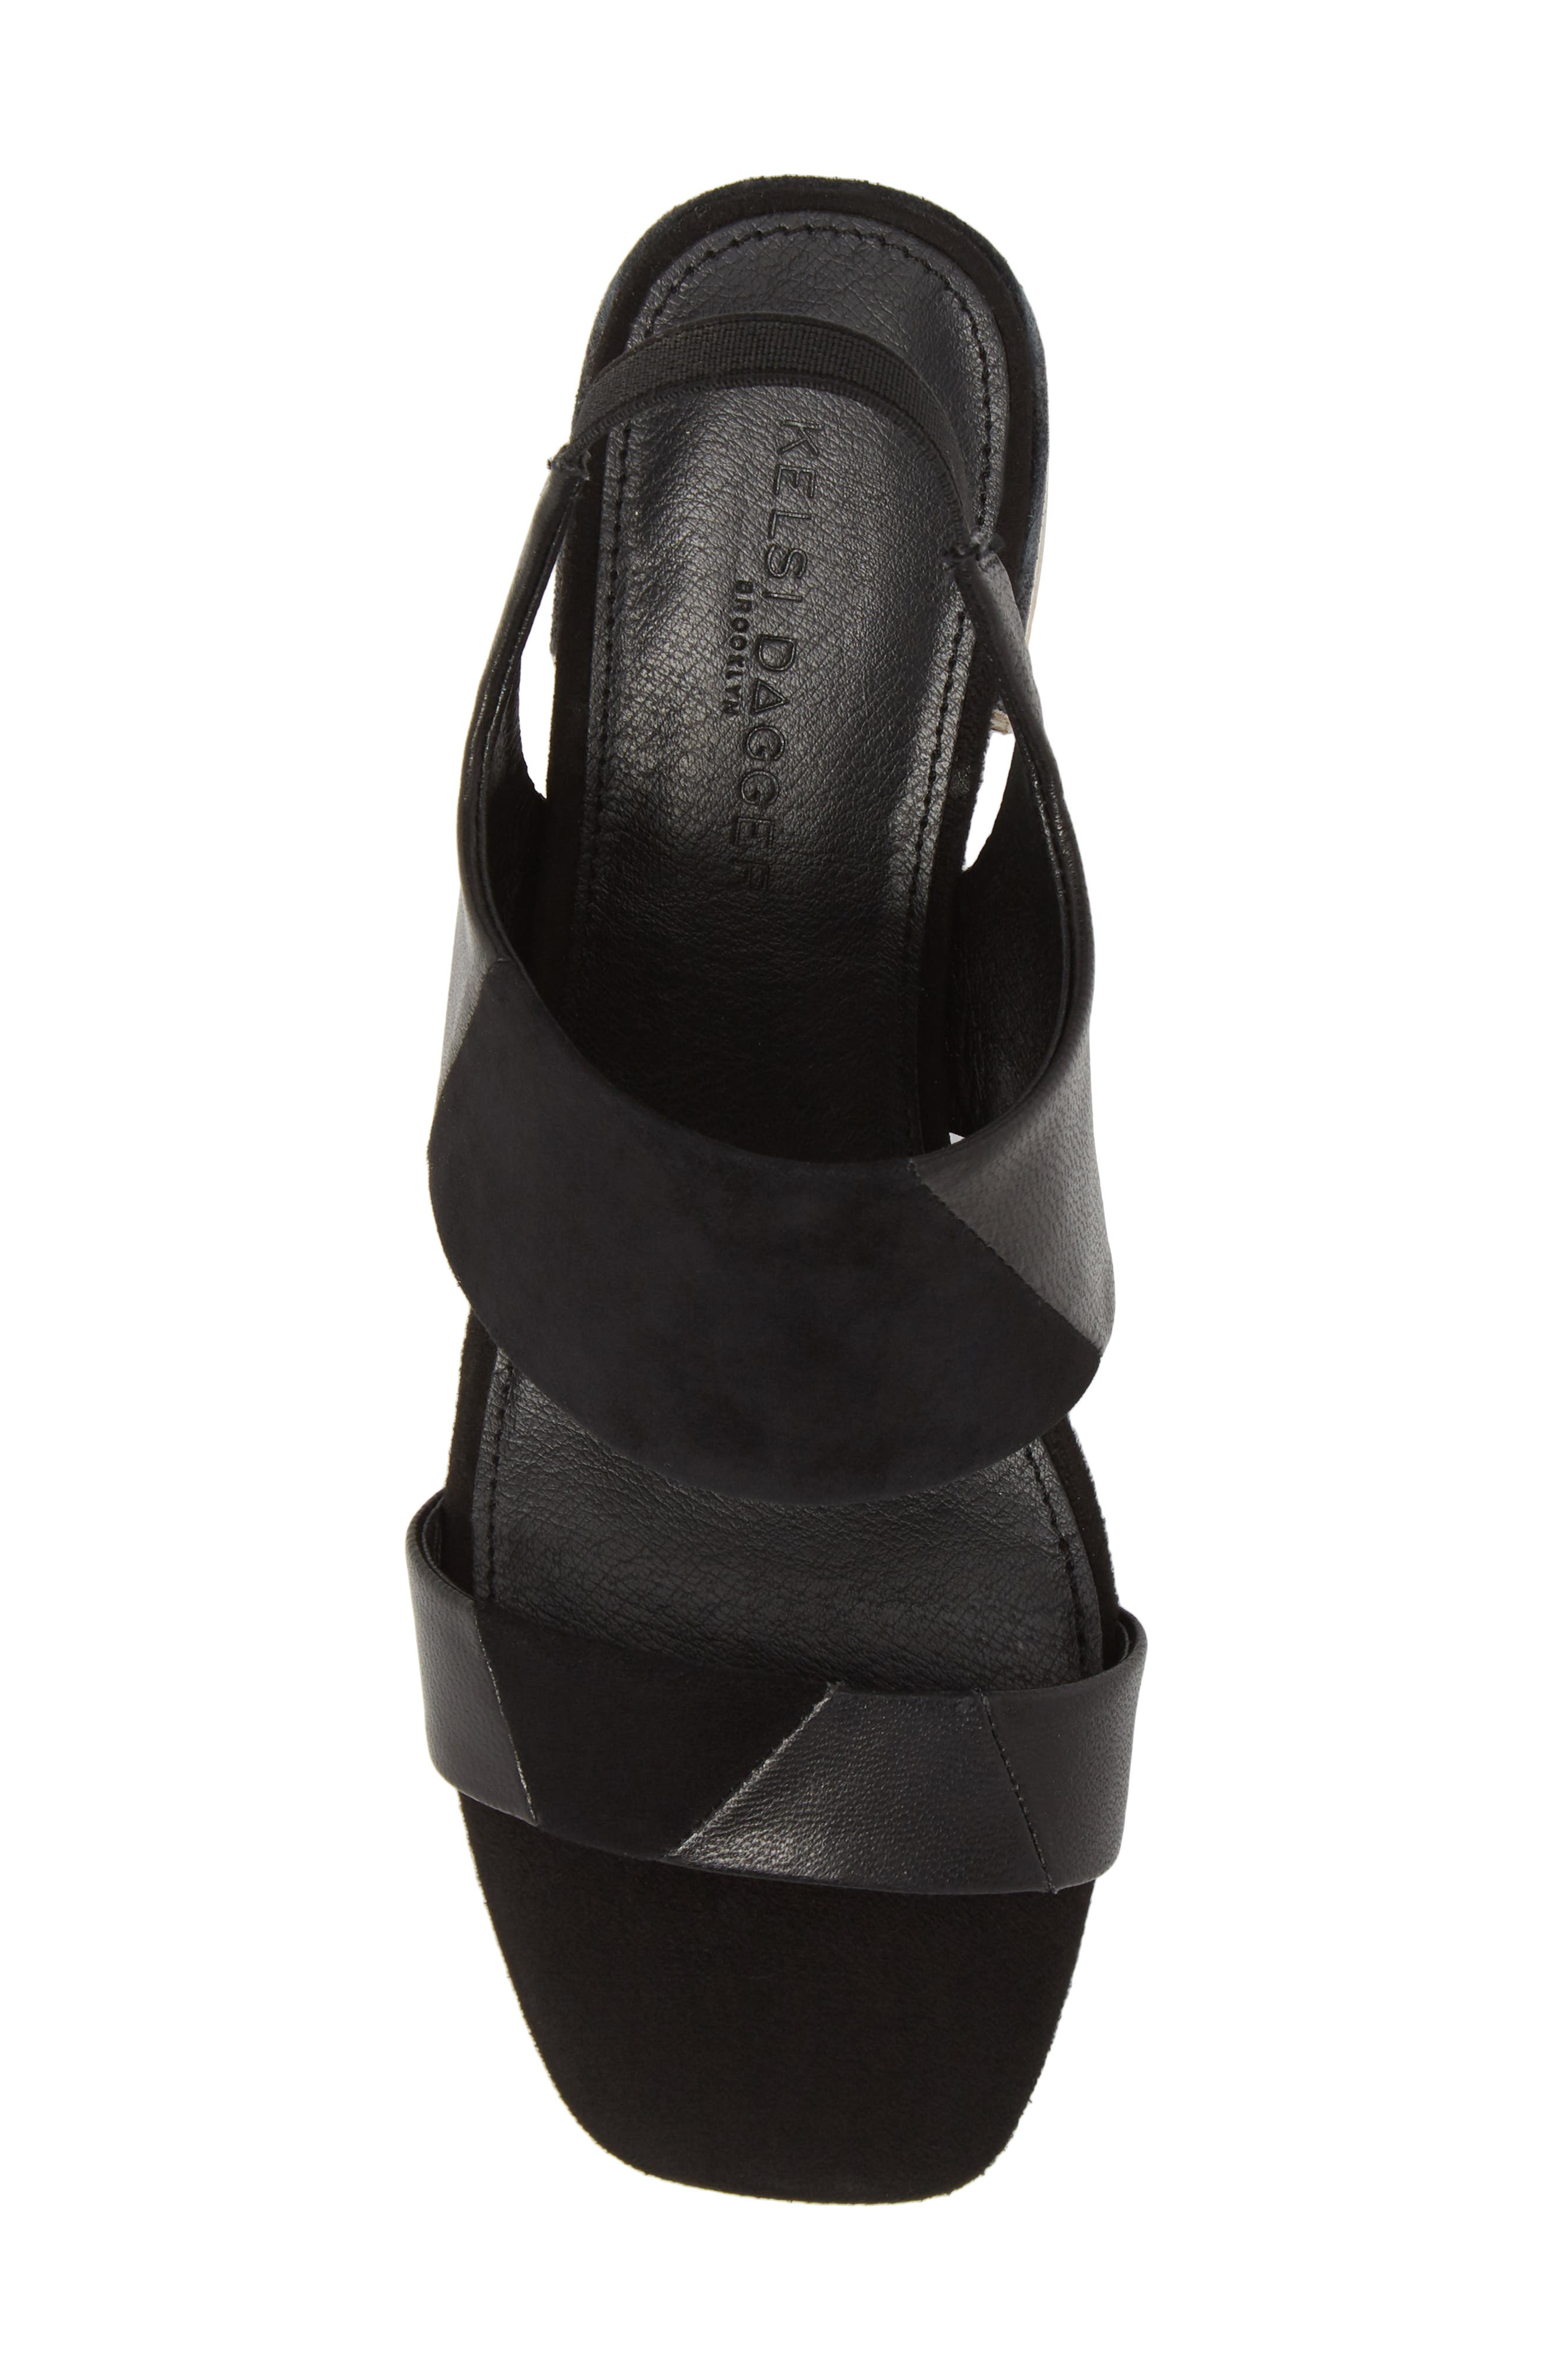 Shiloh Block Heel Sandal,                             Alternate thumbnail 5, color,                             001